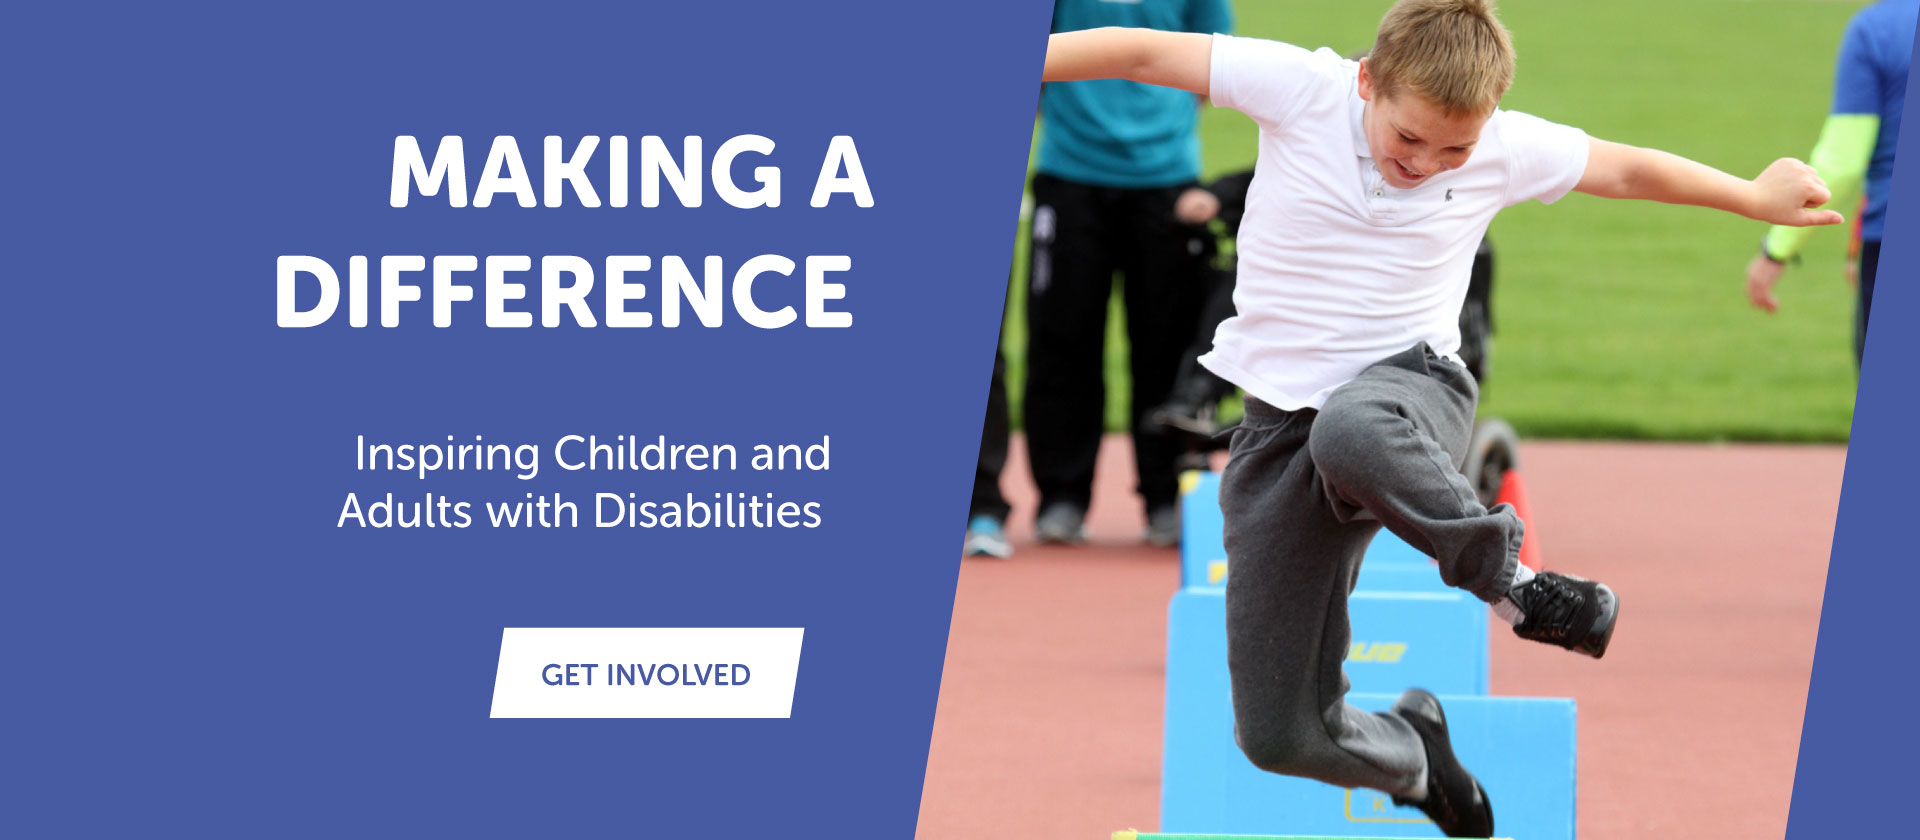 Ayrshire Sportsability inspiring children with disabilities